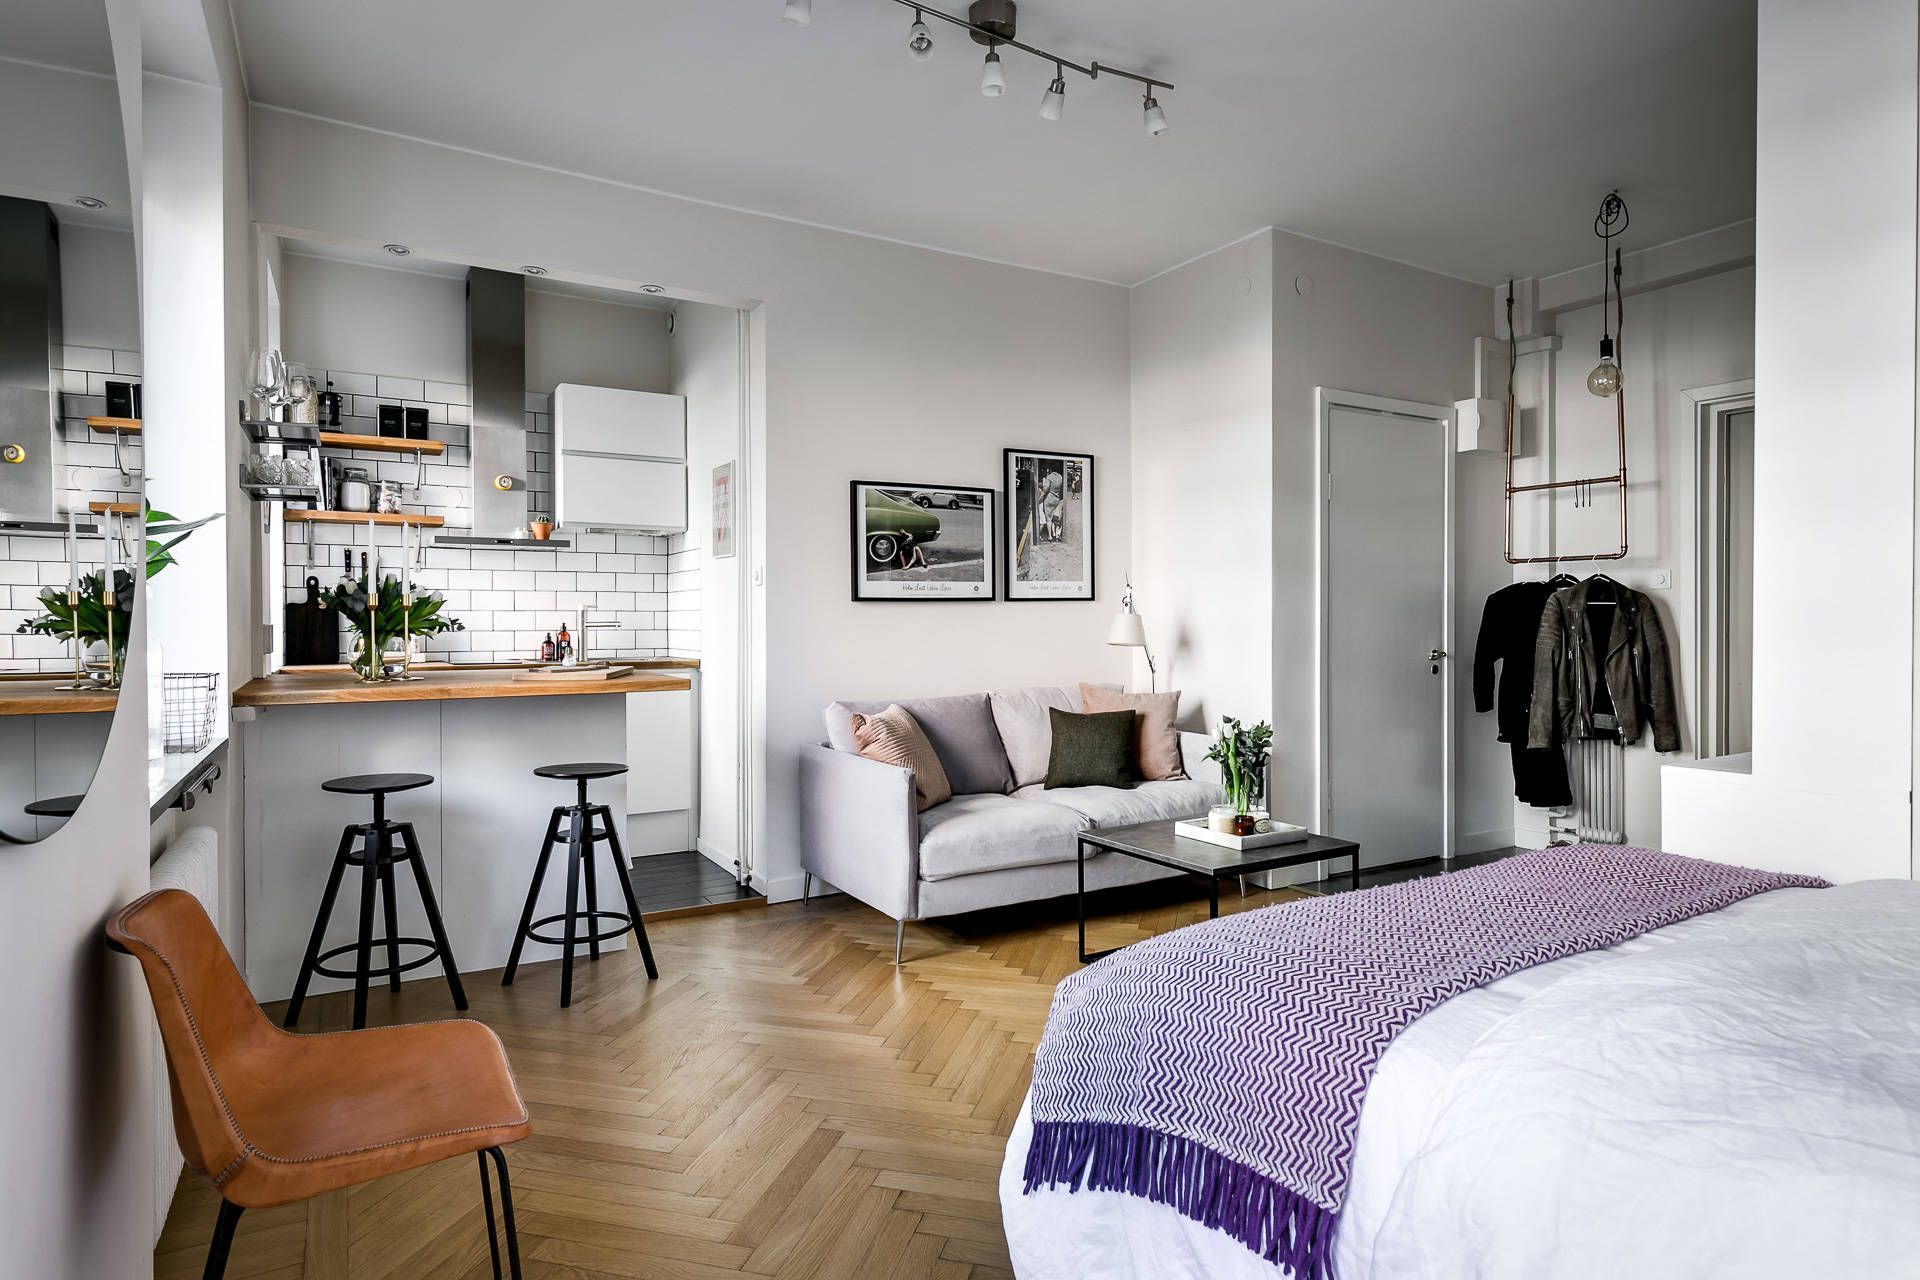 Cozy One Bedroom Apartment Decor In 2020 Apartment Room Small